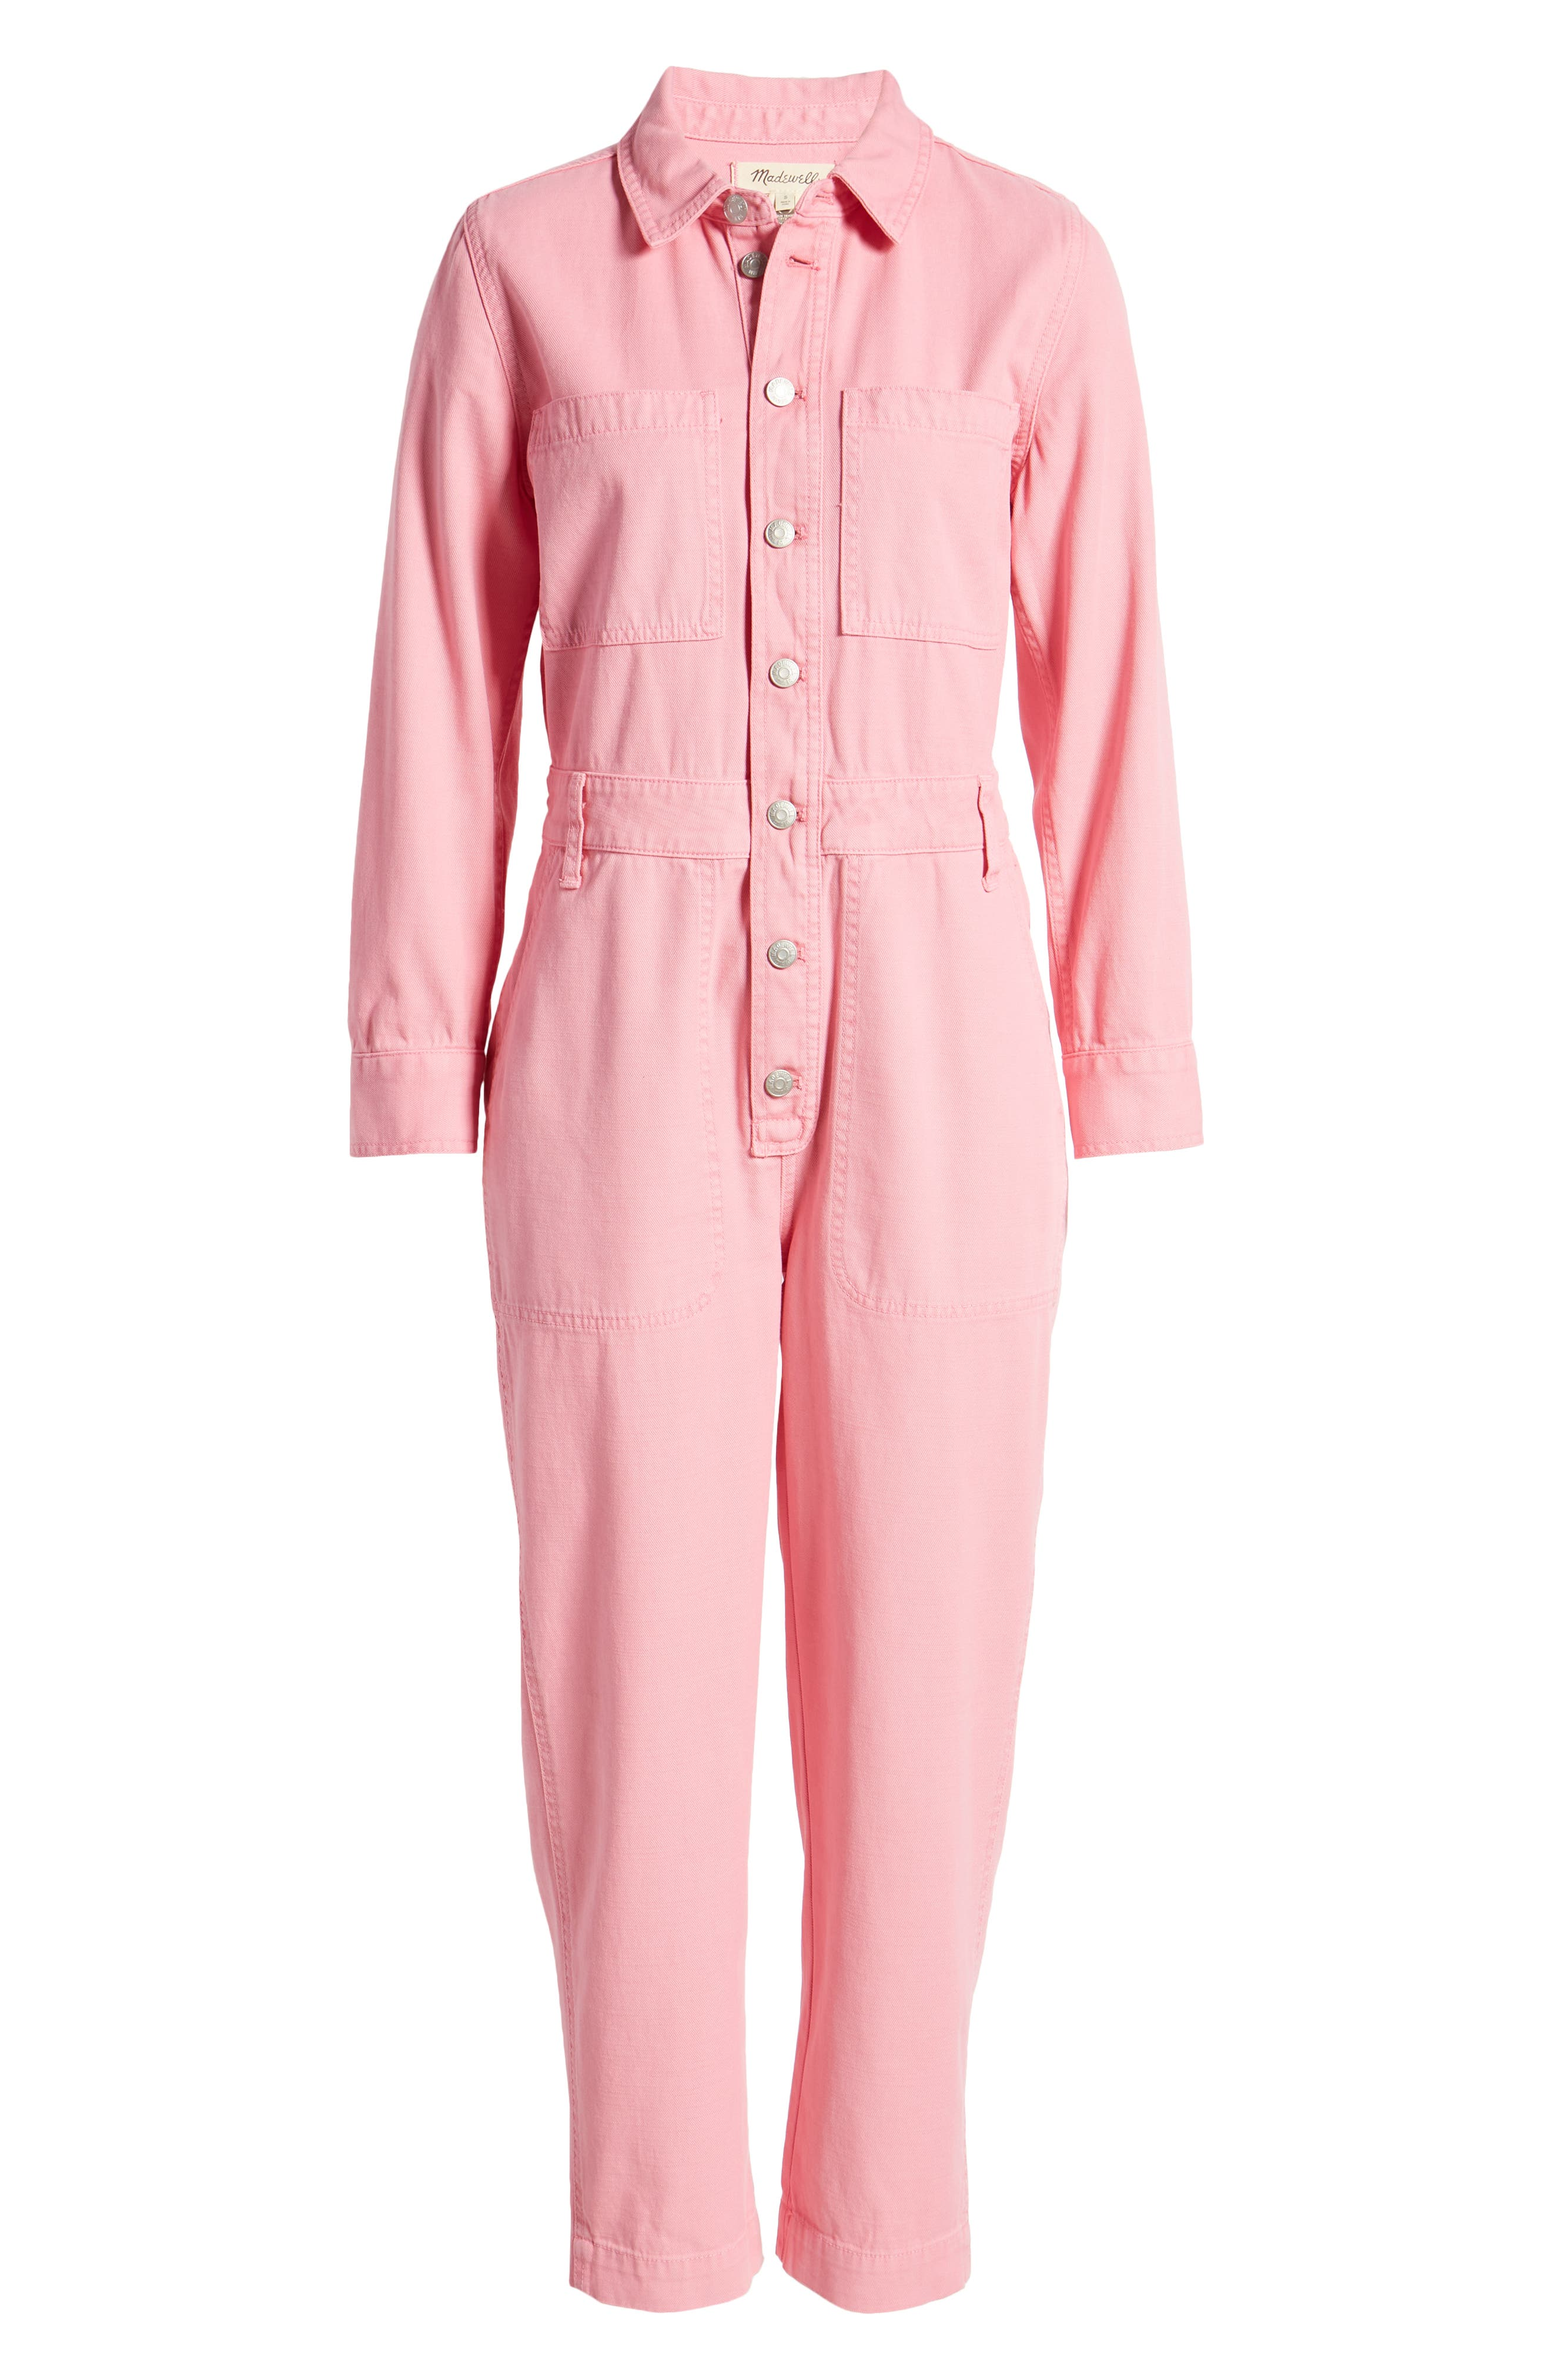 Rosie the Riveter Costume & Outfit Ideas Womens Madewell WomenS Garment Dyed Relaxed Coverall Jumpsuit Size XX-Large - Pink $148.00 AT vintagedancer.com